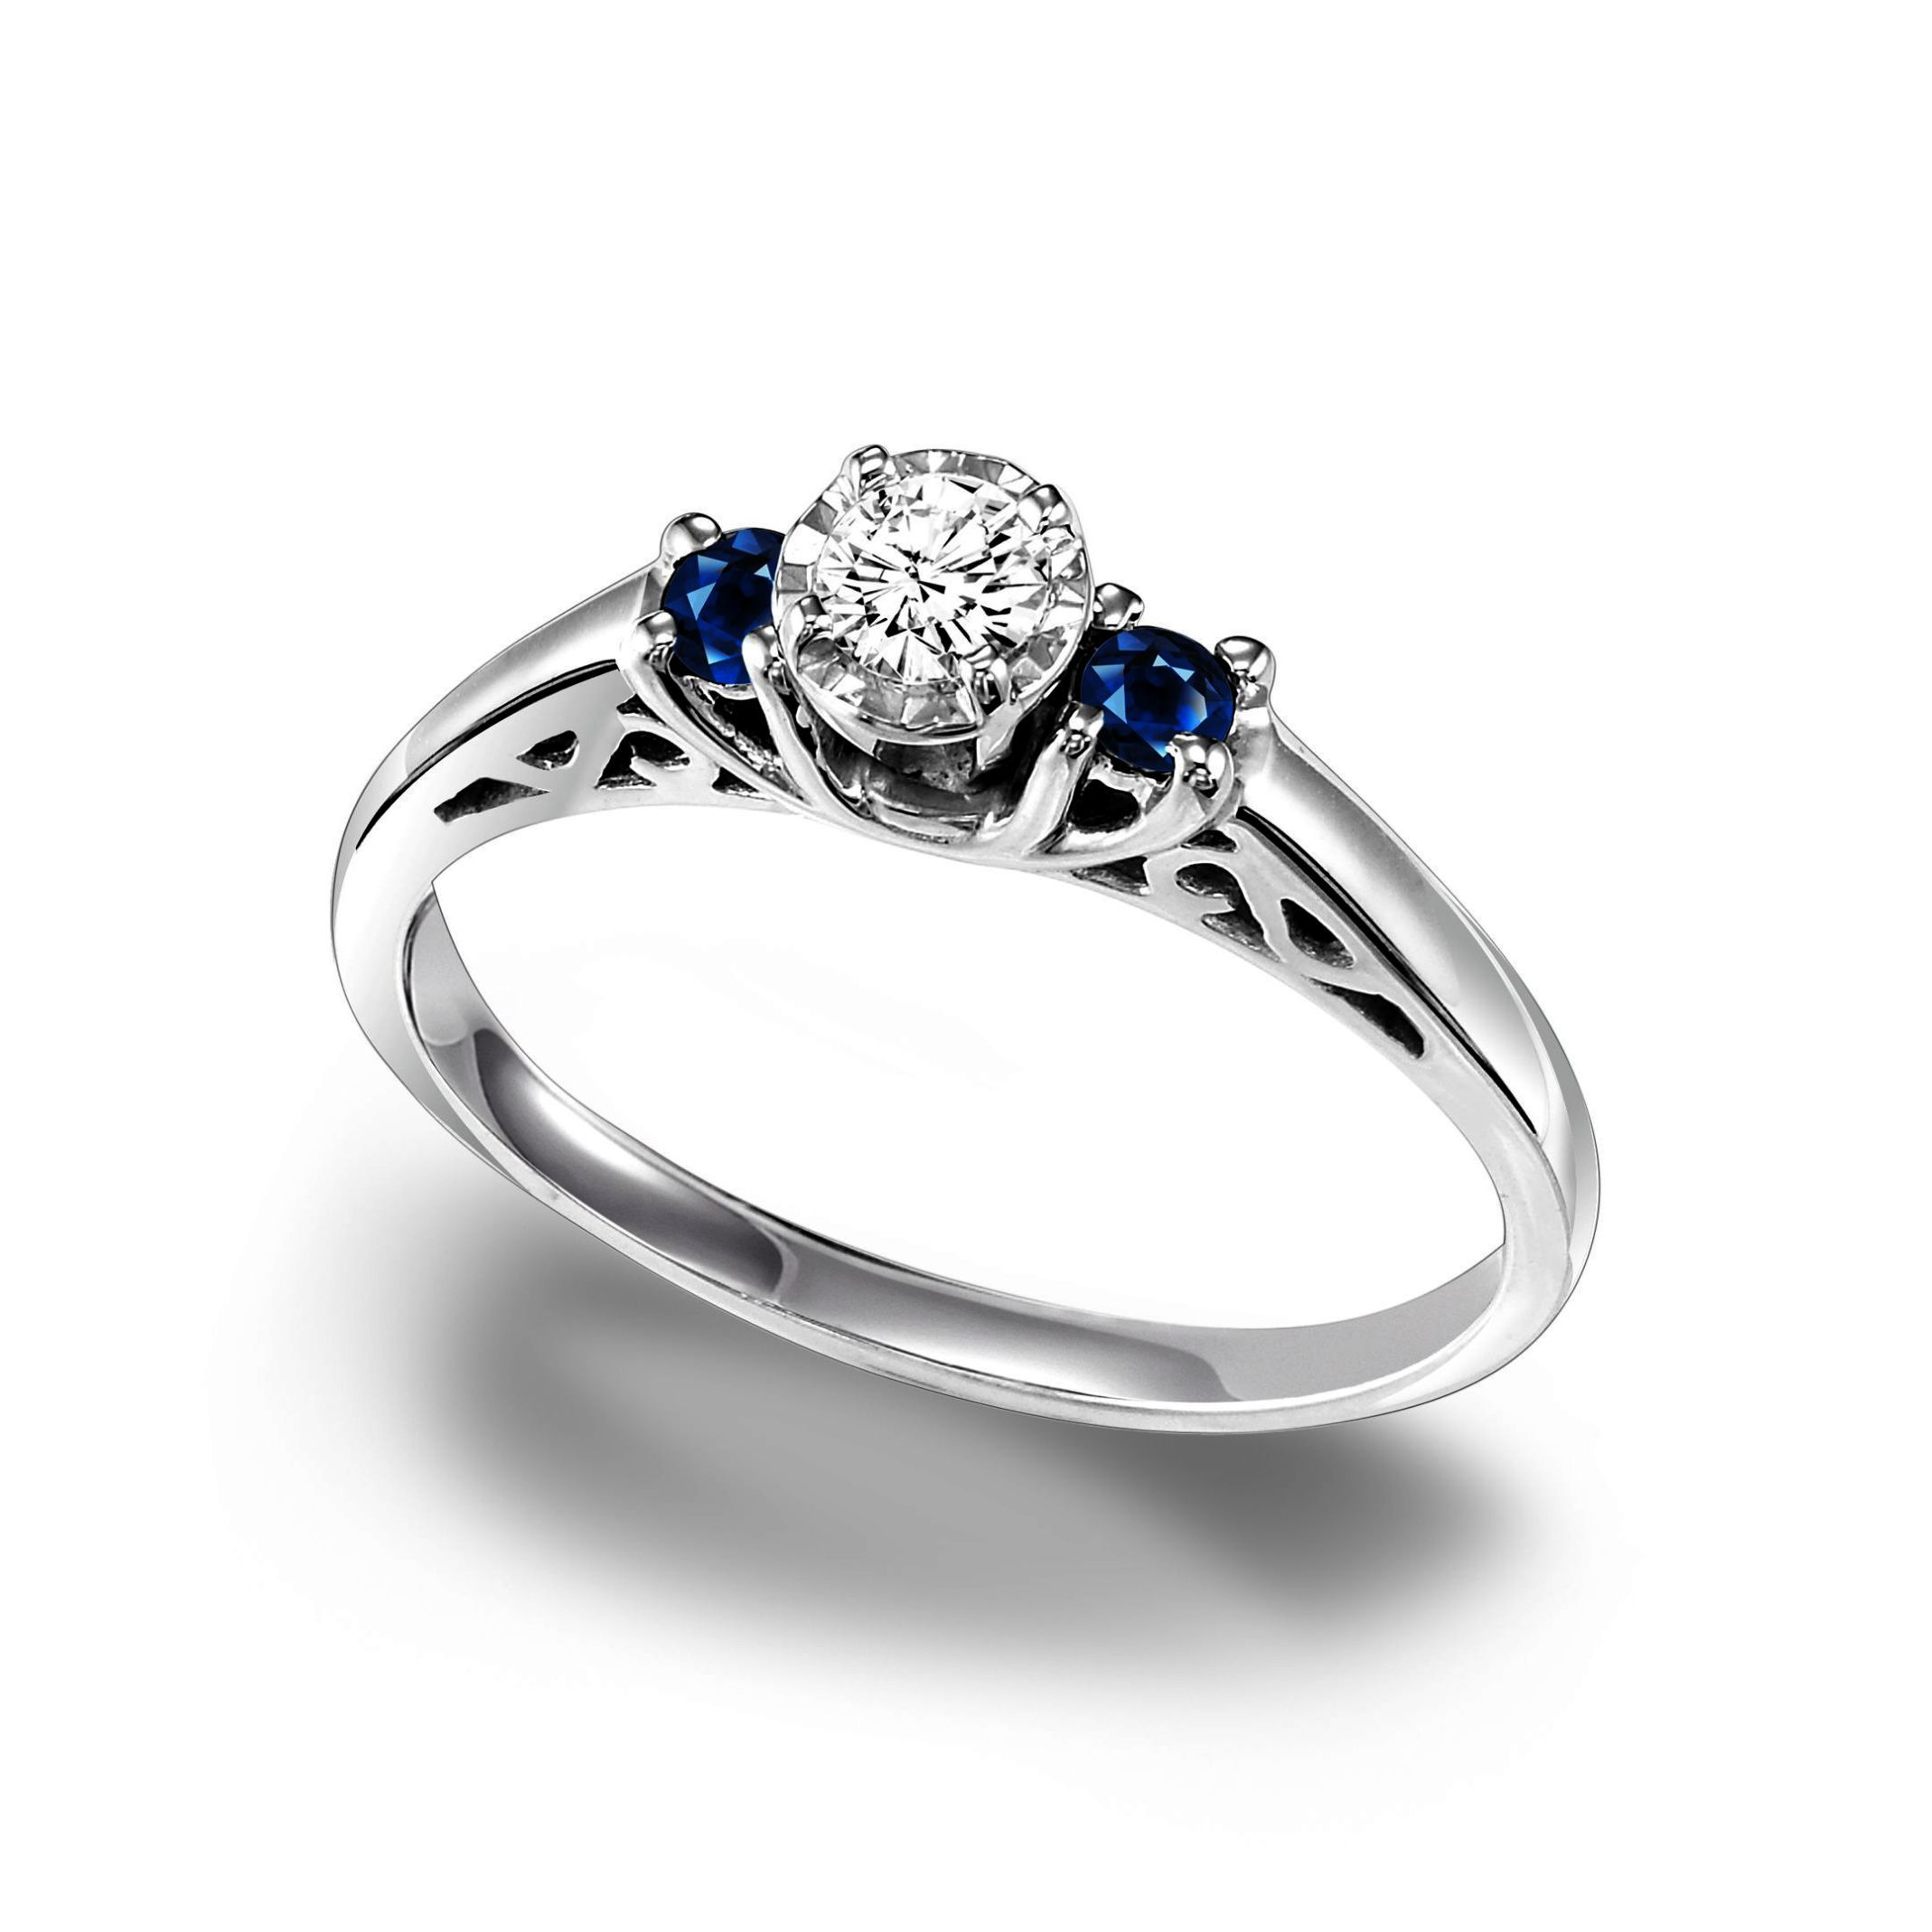 35+ Top rated jewelry stores near me viral